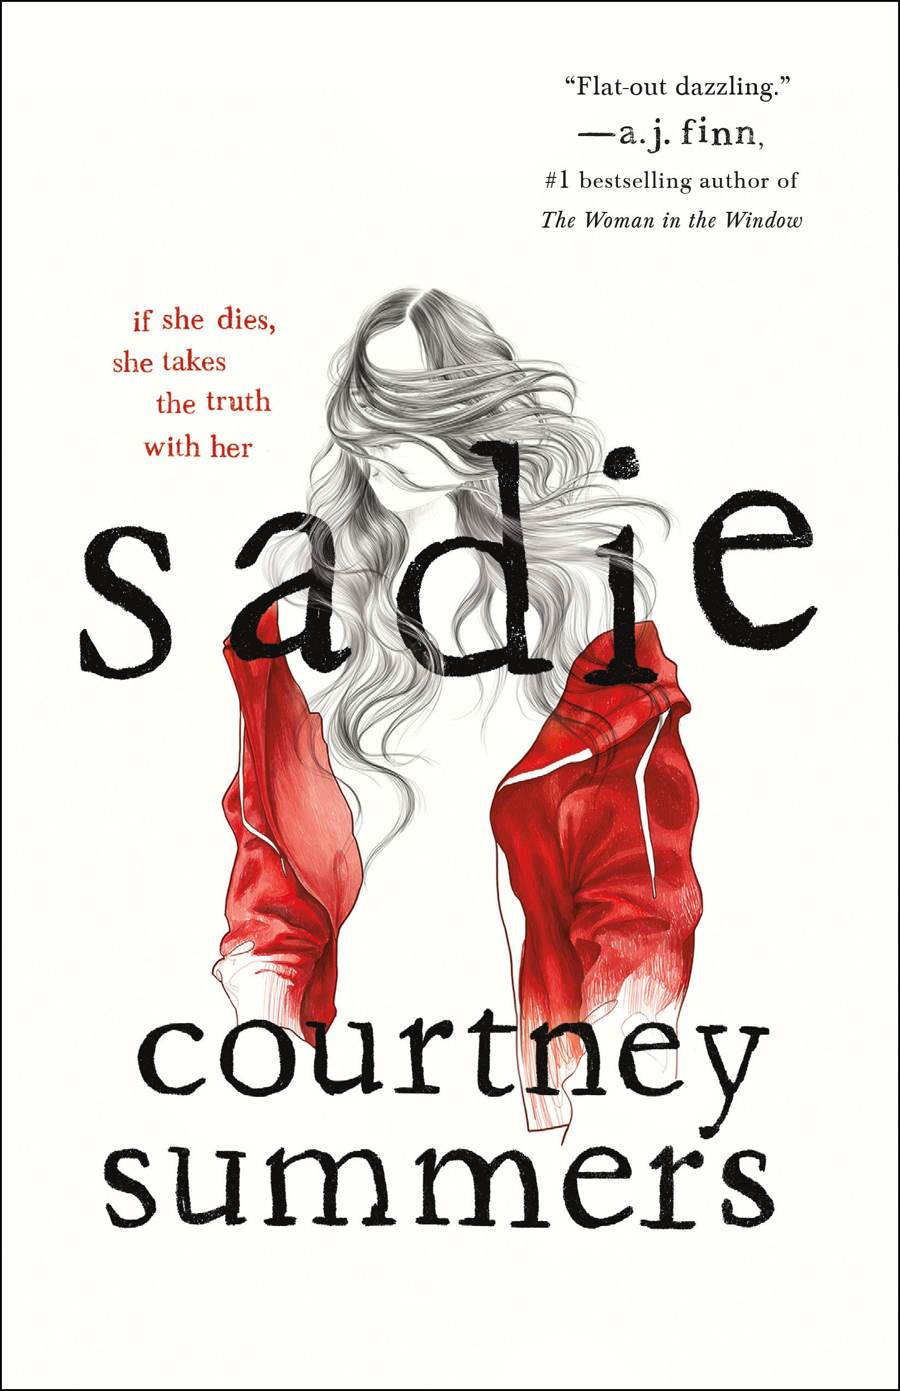 sadie-courtney-summers-cover-quote